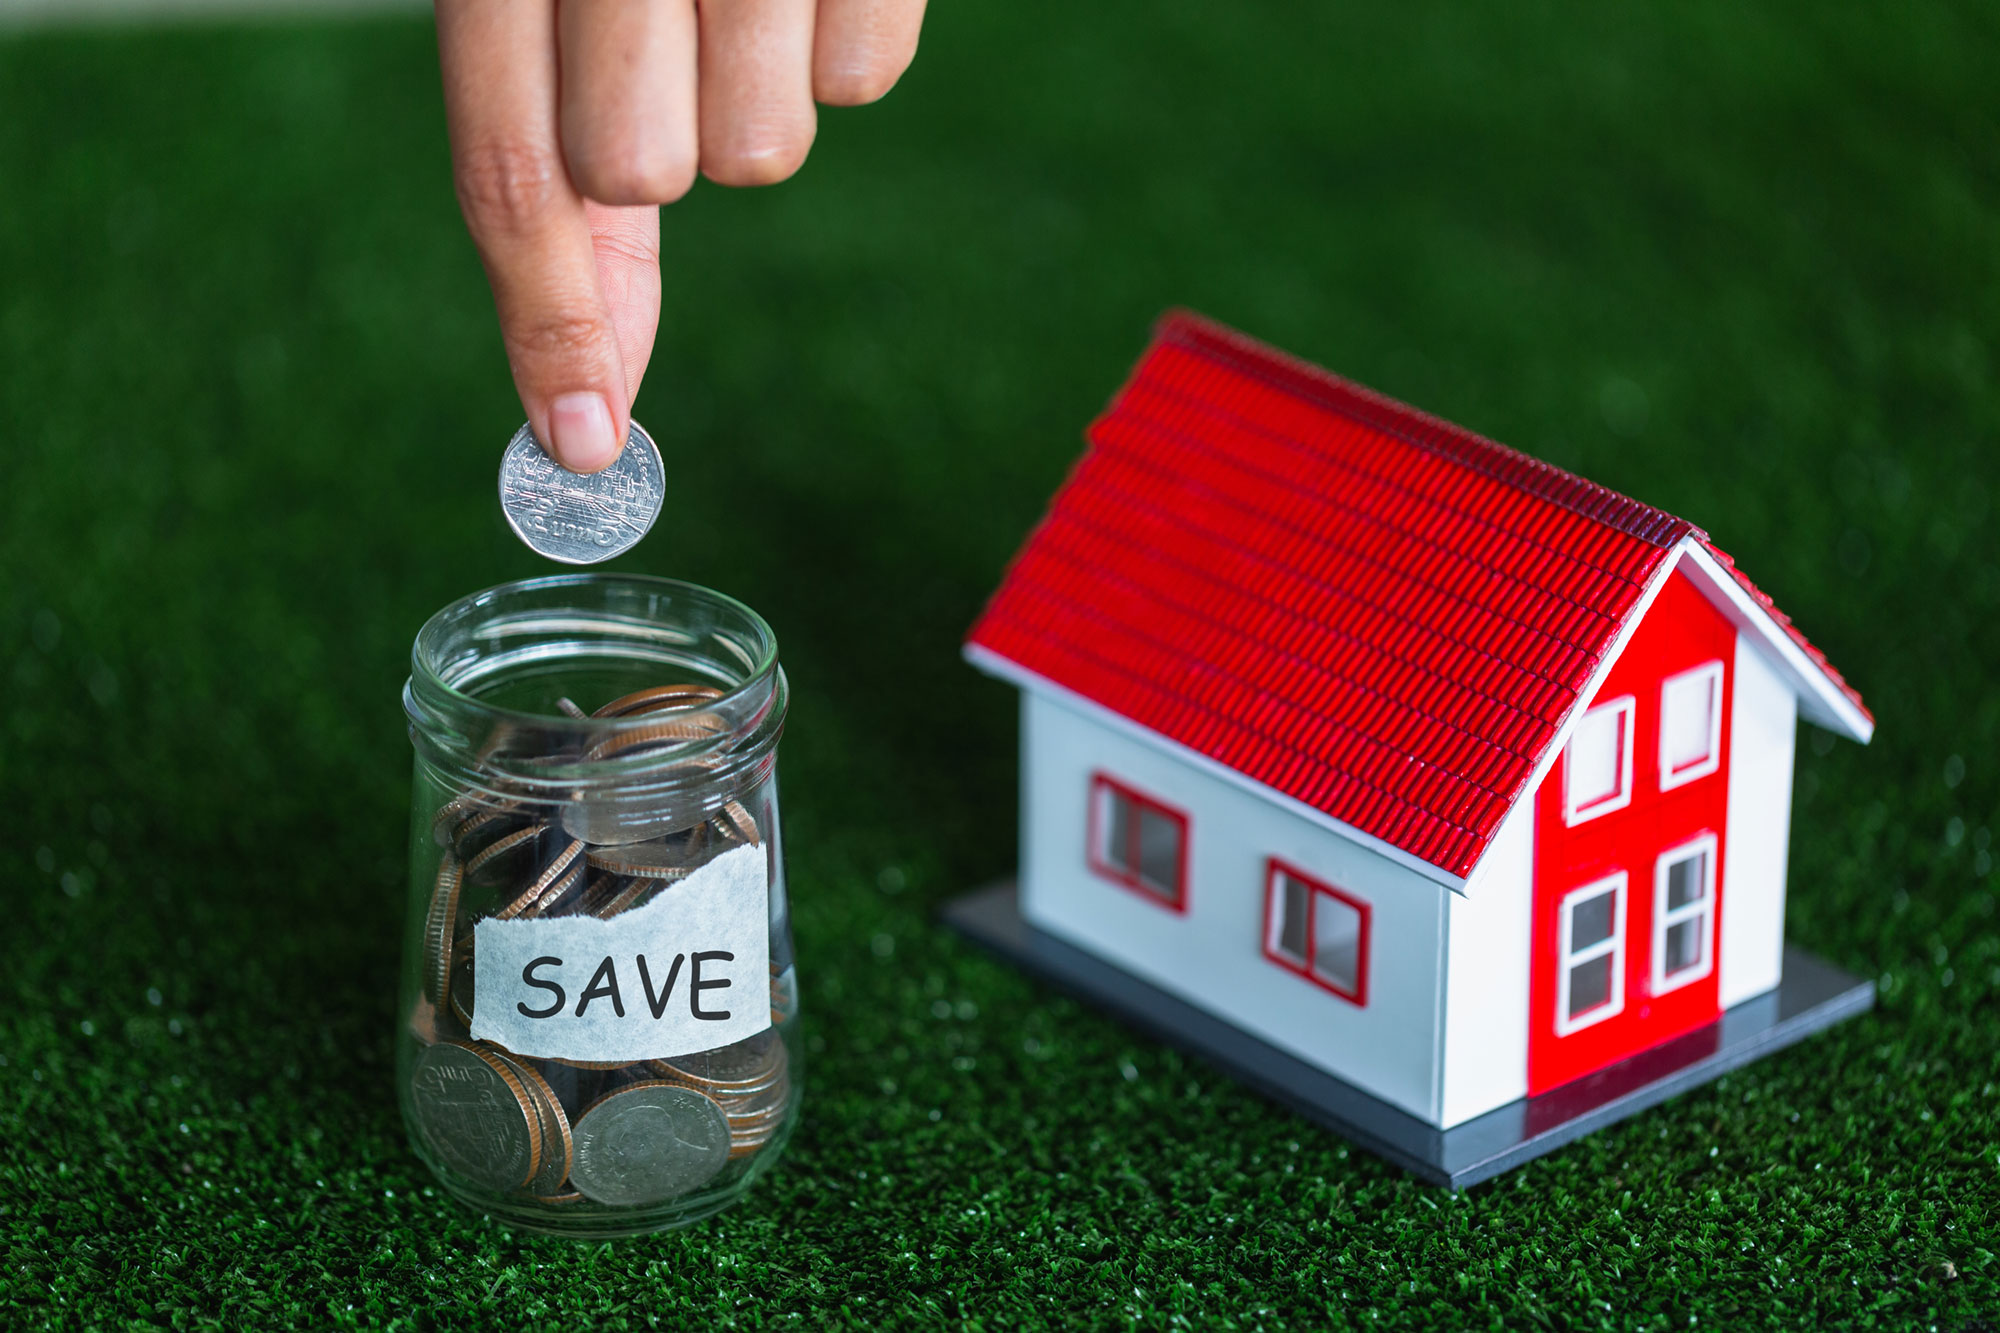 Real Estate Savings Concept